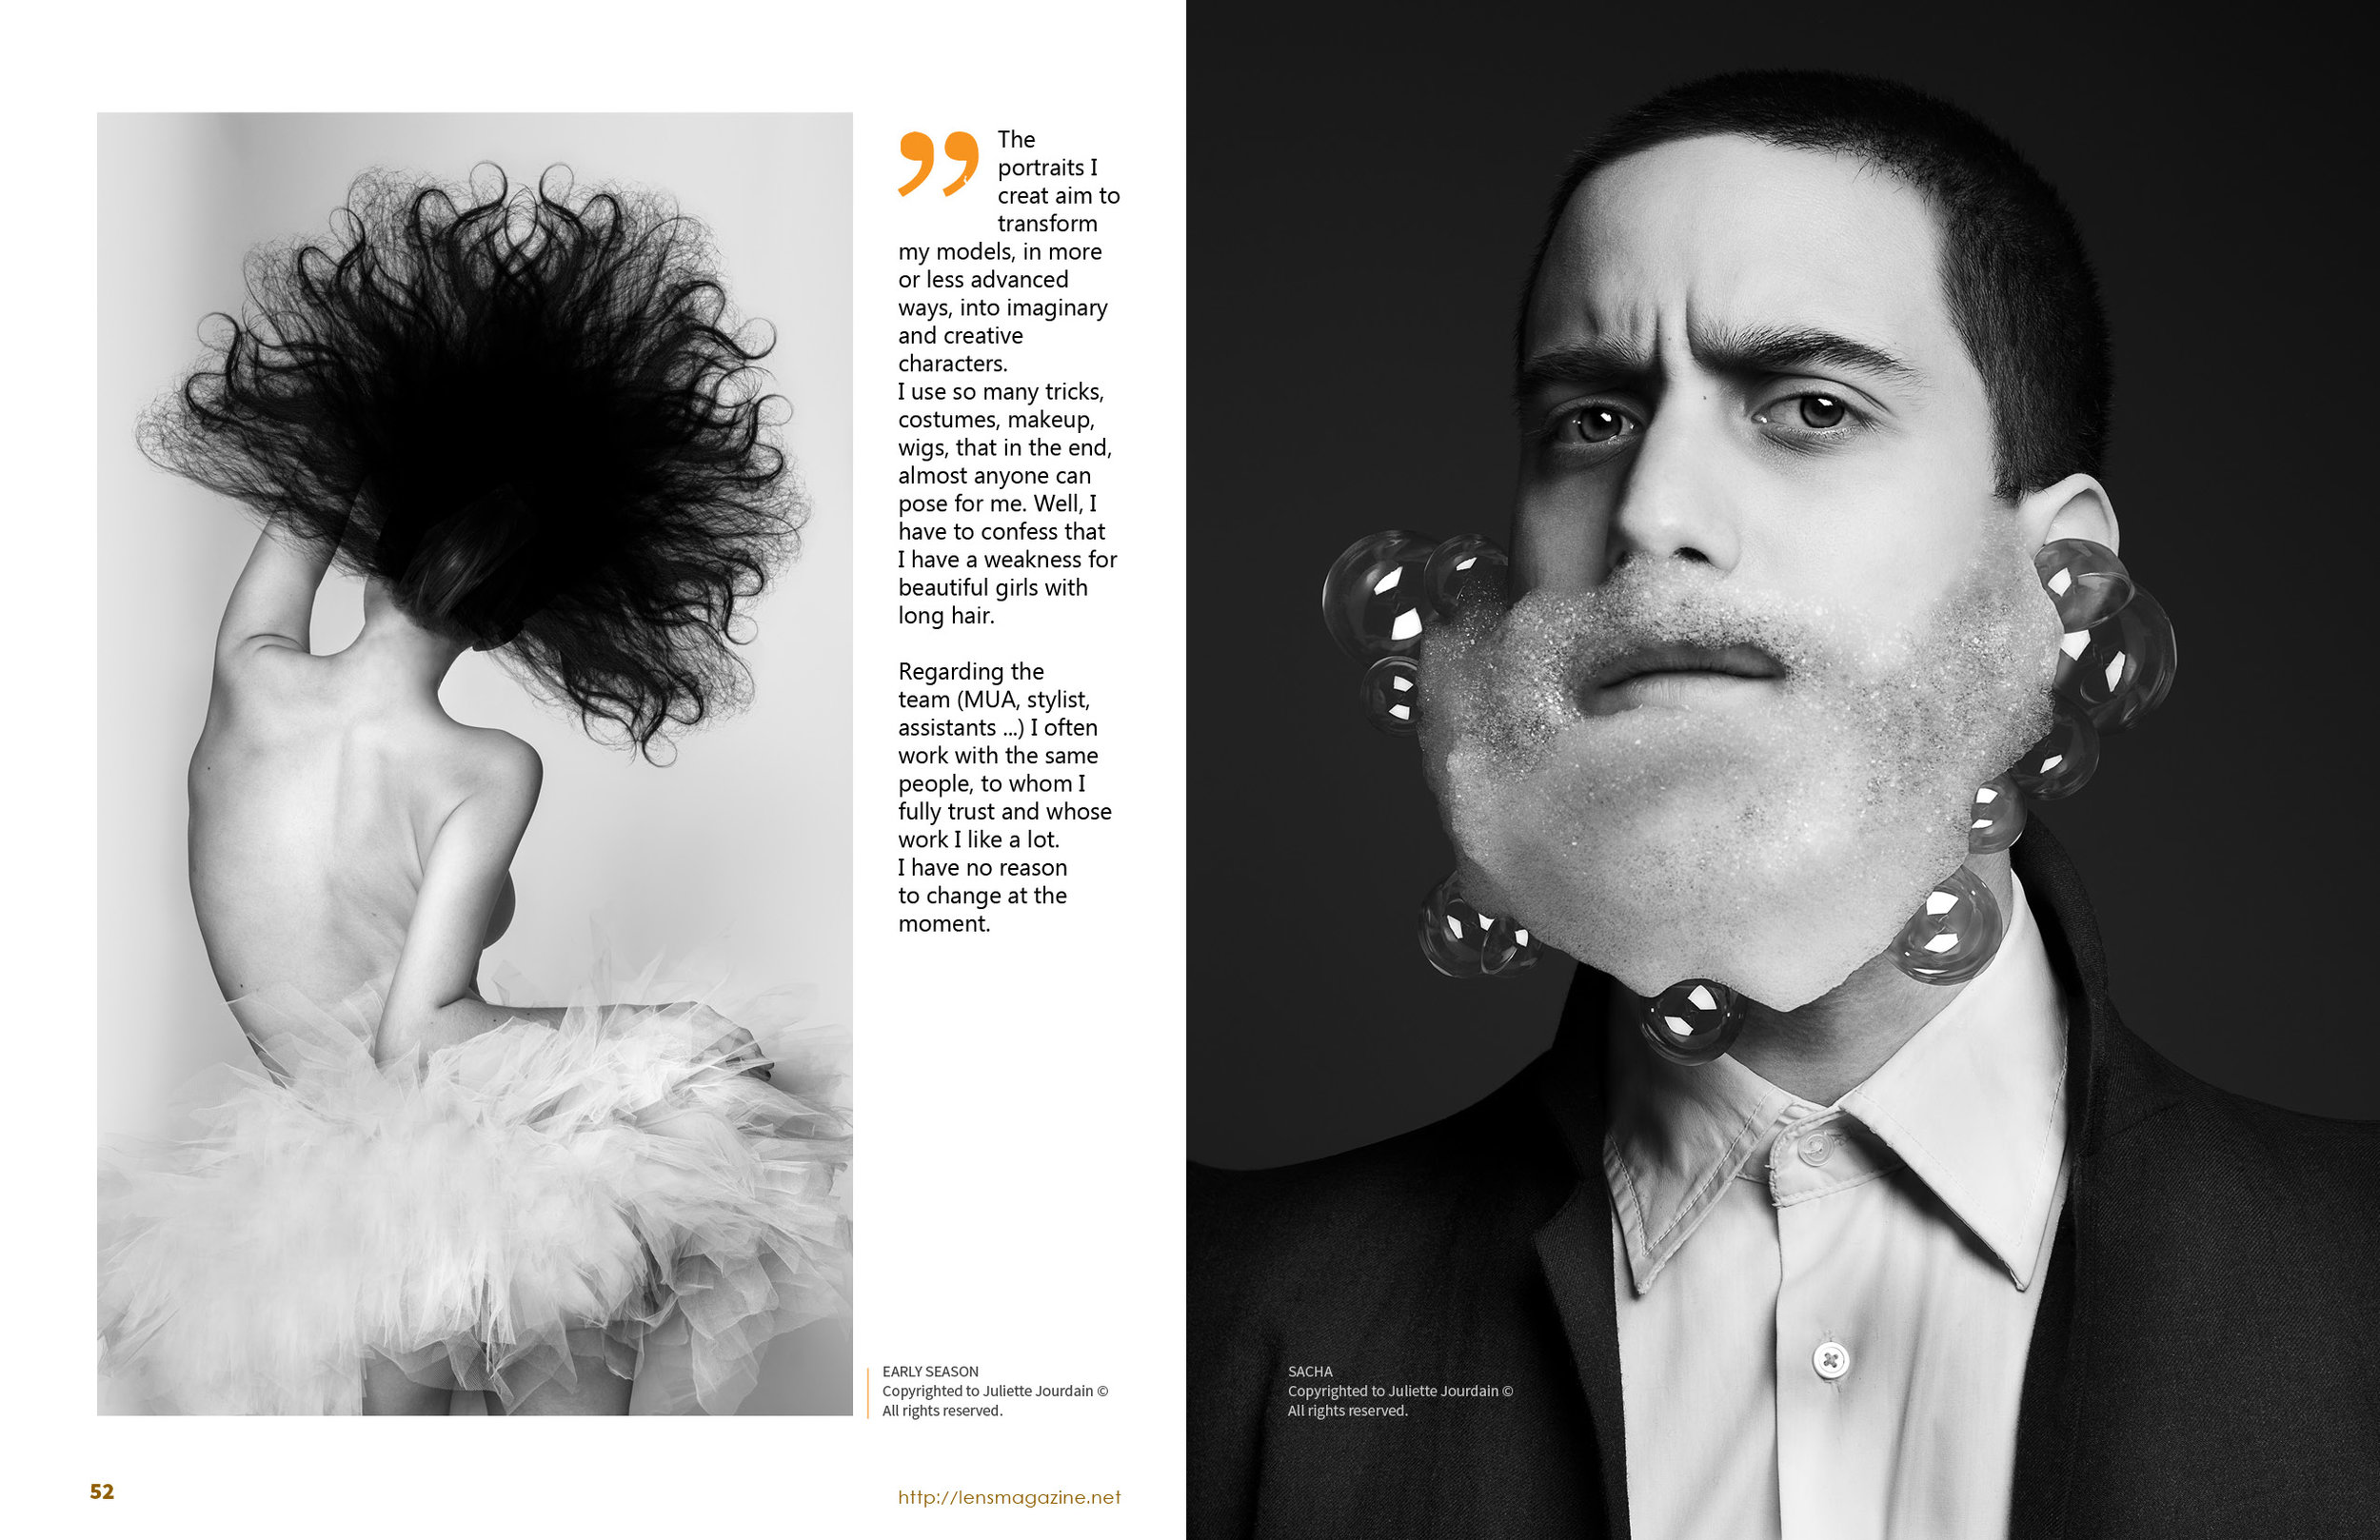 Lens_magazine_issue5_valerie_paumelle_agent_juliette_jourdain_photographer_portrait_artwork (9).jpg